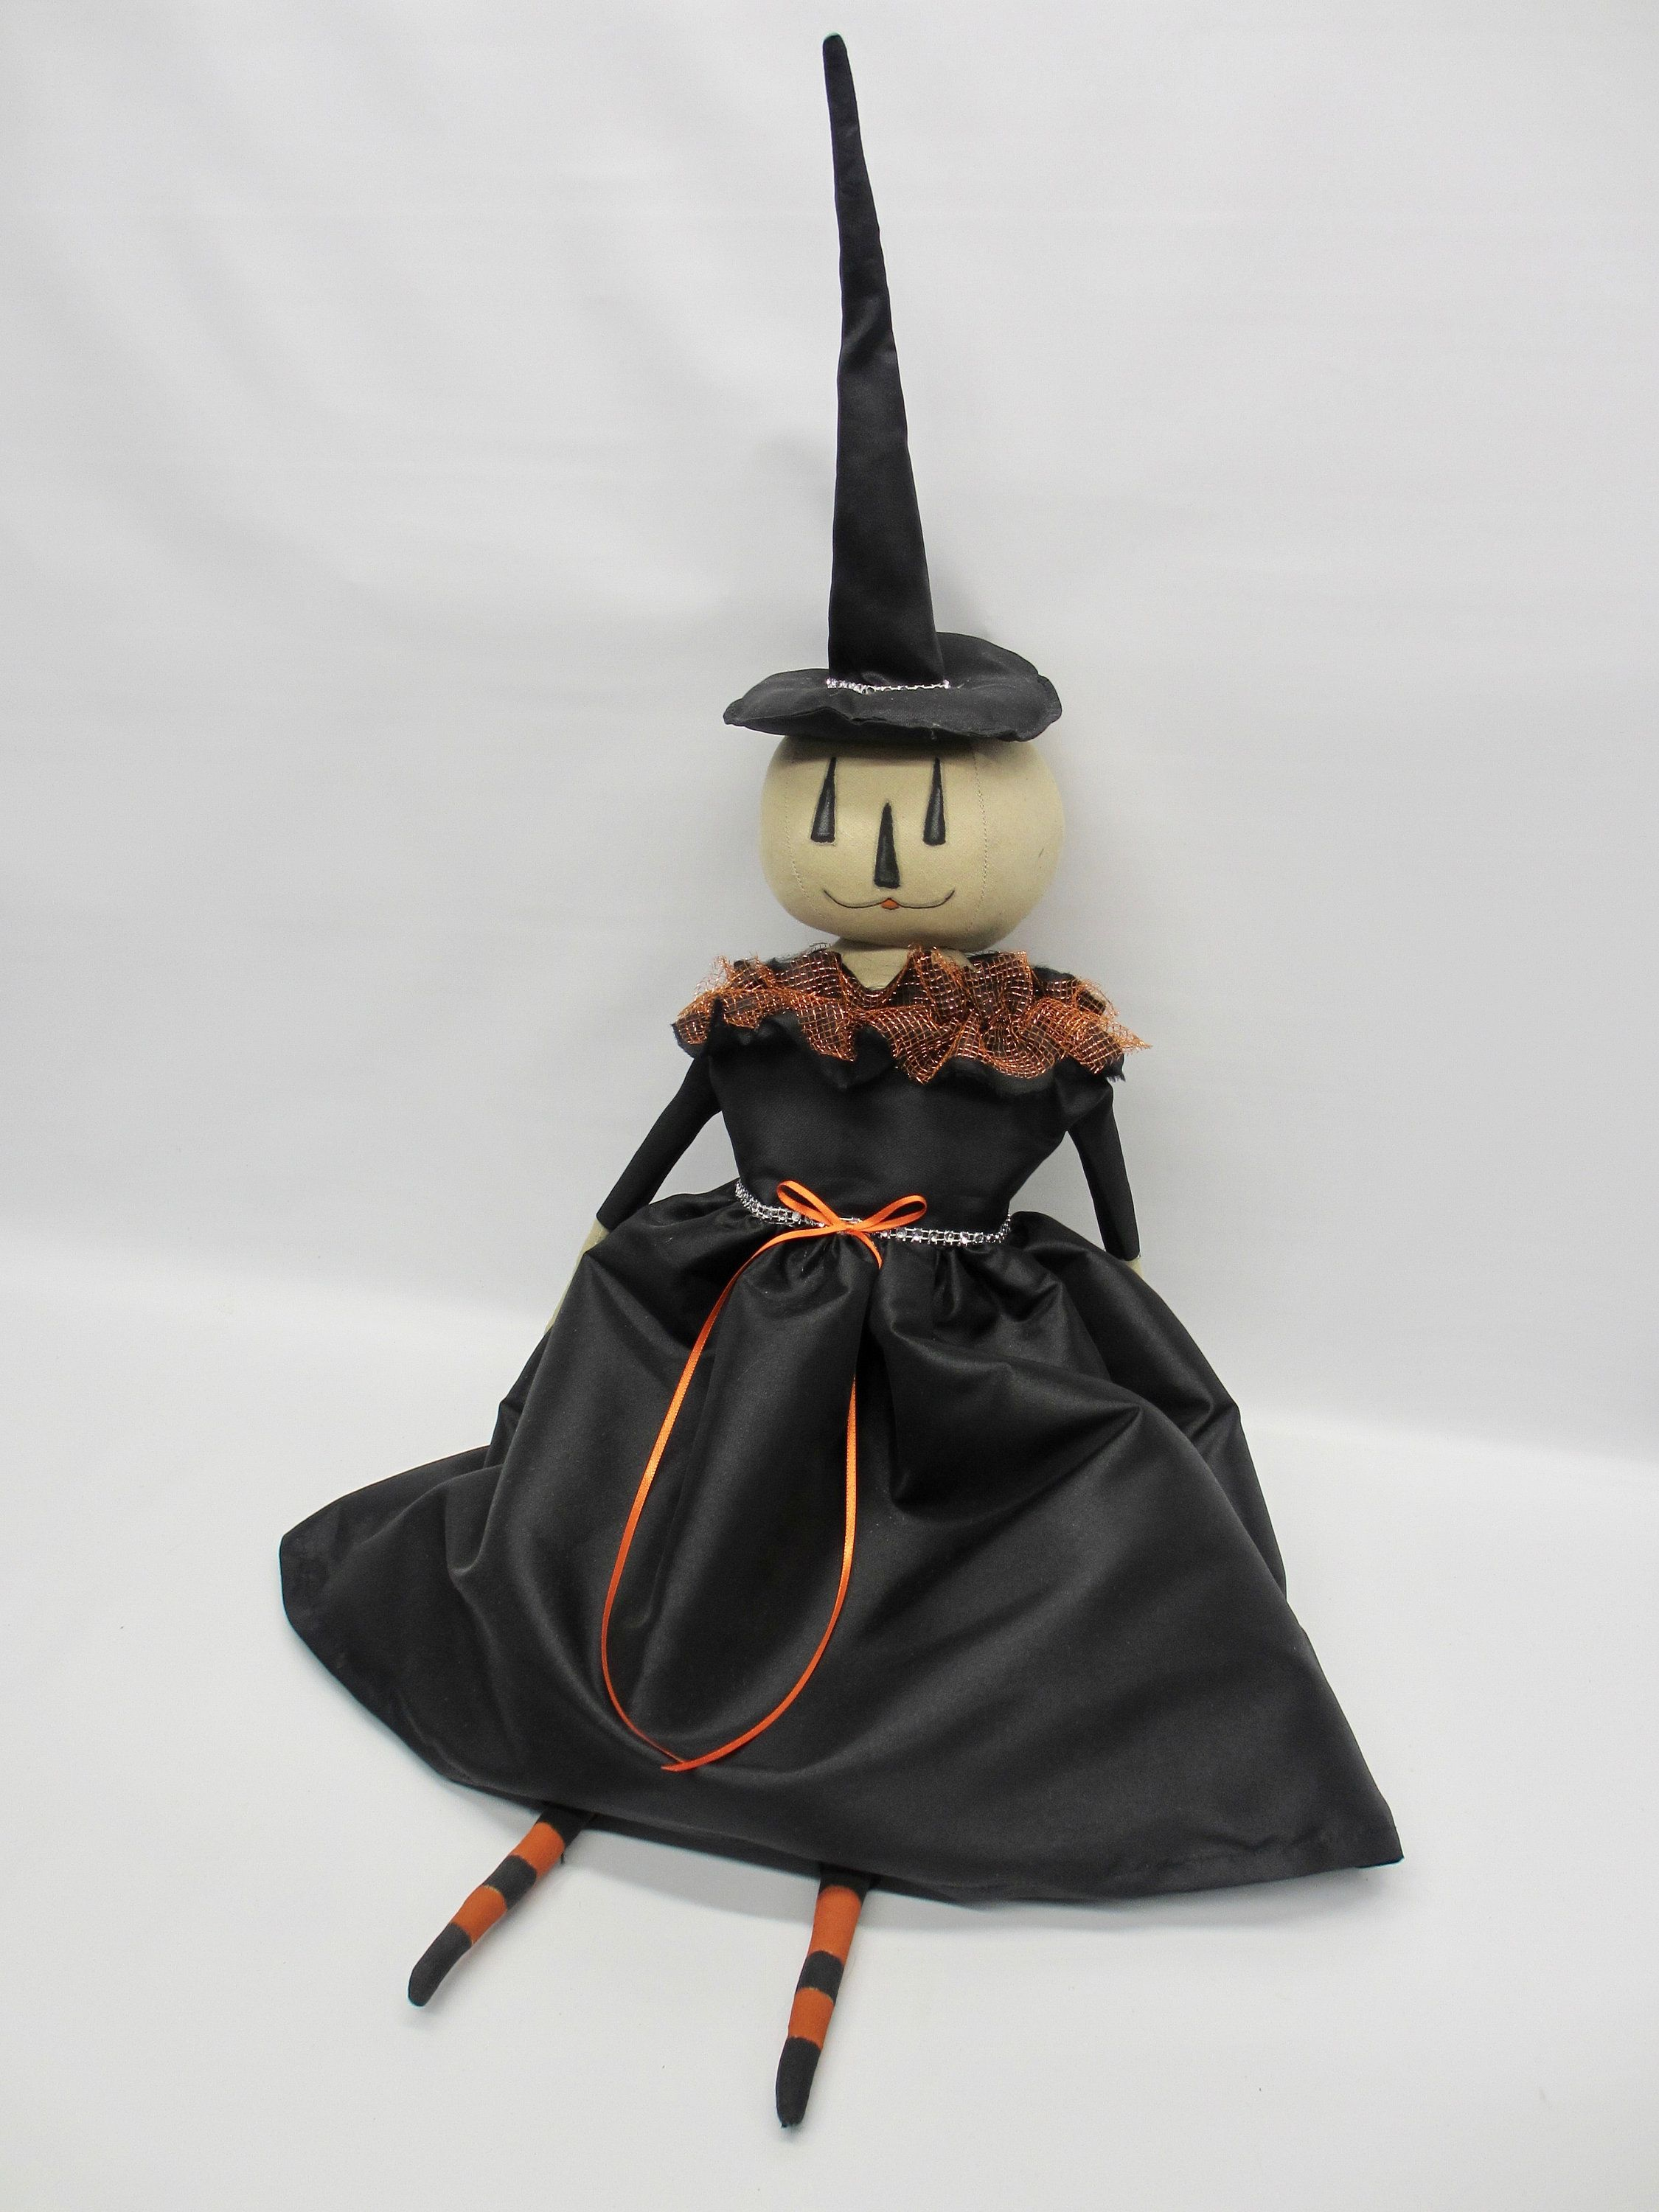 Halloween Witch Doll | Halloween home decor | Gothic decoration | Elegant Halloween decoration | Indoor decoration | Witch Art Doll | Rustic #eleganthalloweendecor